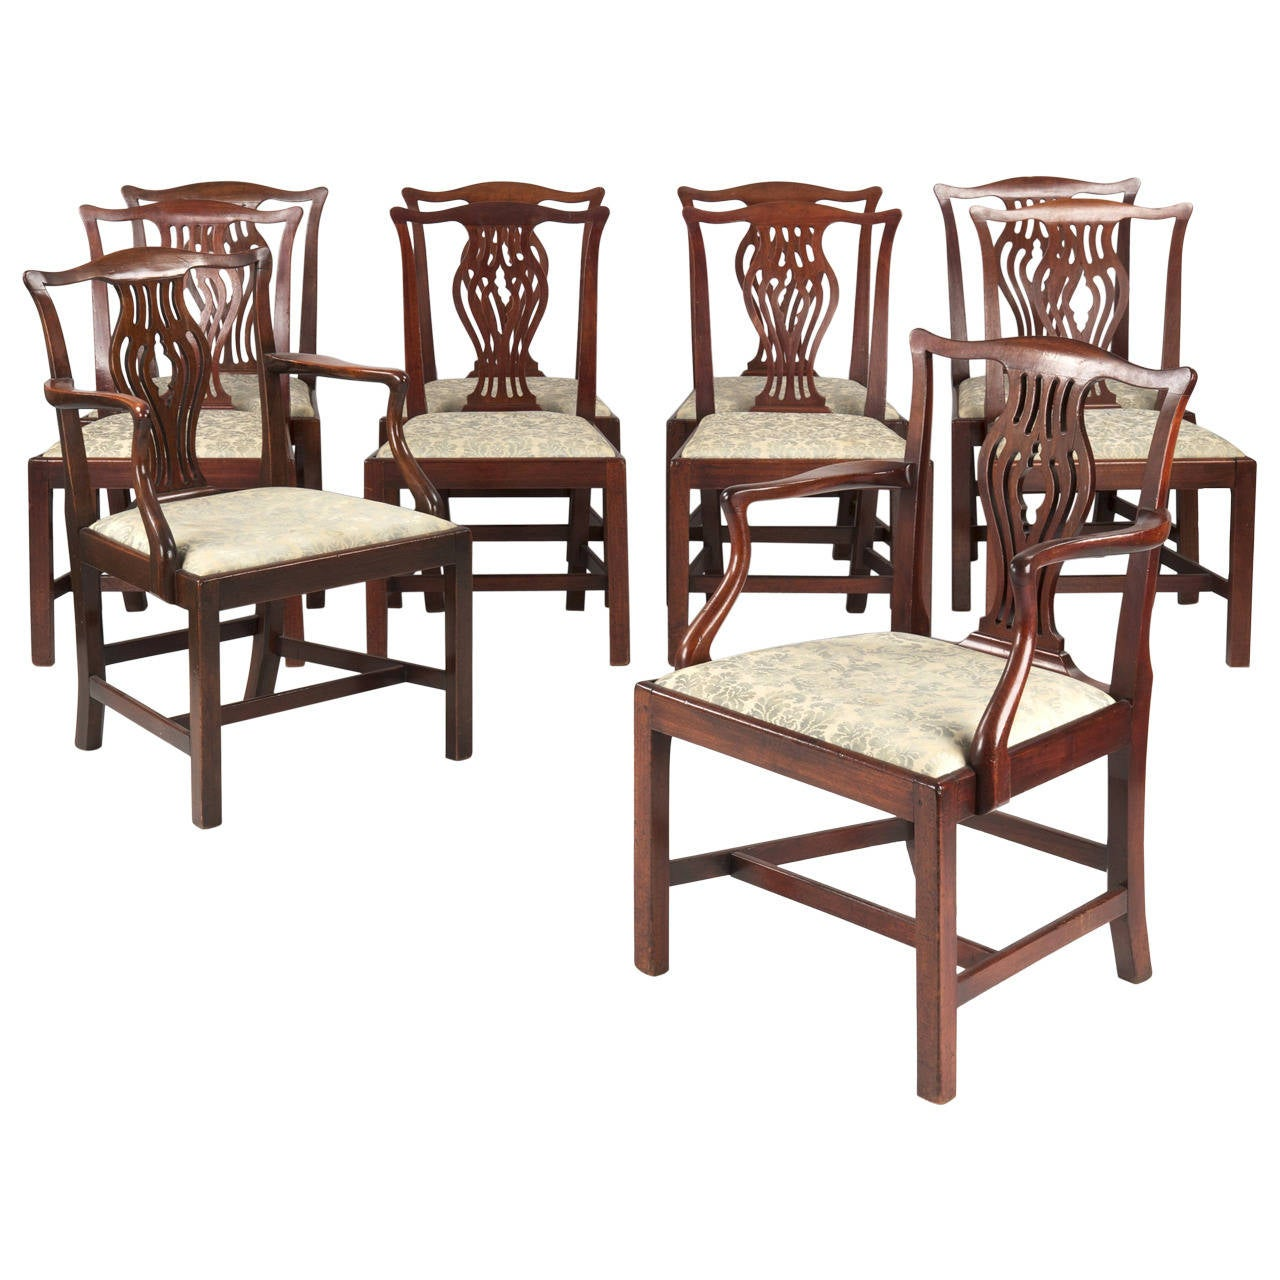 Set of Ten English Chippendale Antique Mahogany Dining Chairs, 19th Century  For Sale - Set Of Ten English Chippendale Antique Mahogany Dining Chairs, 19th